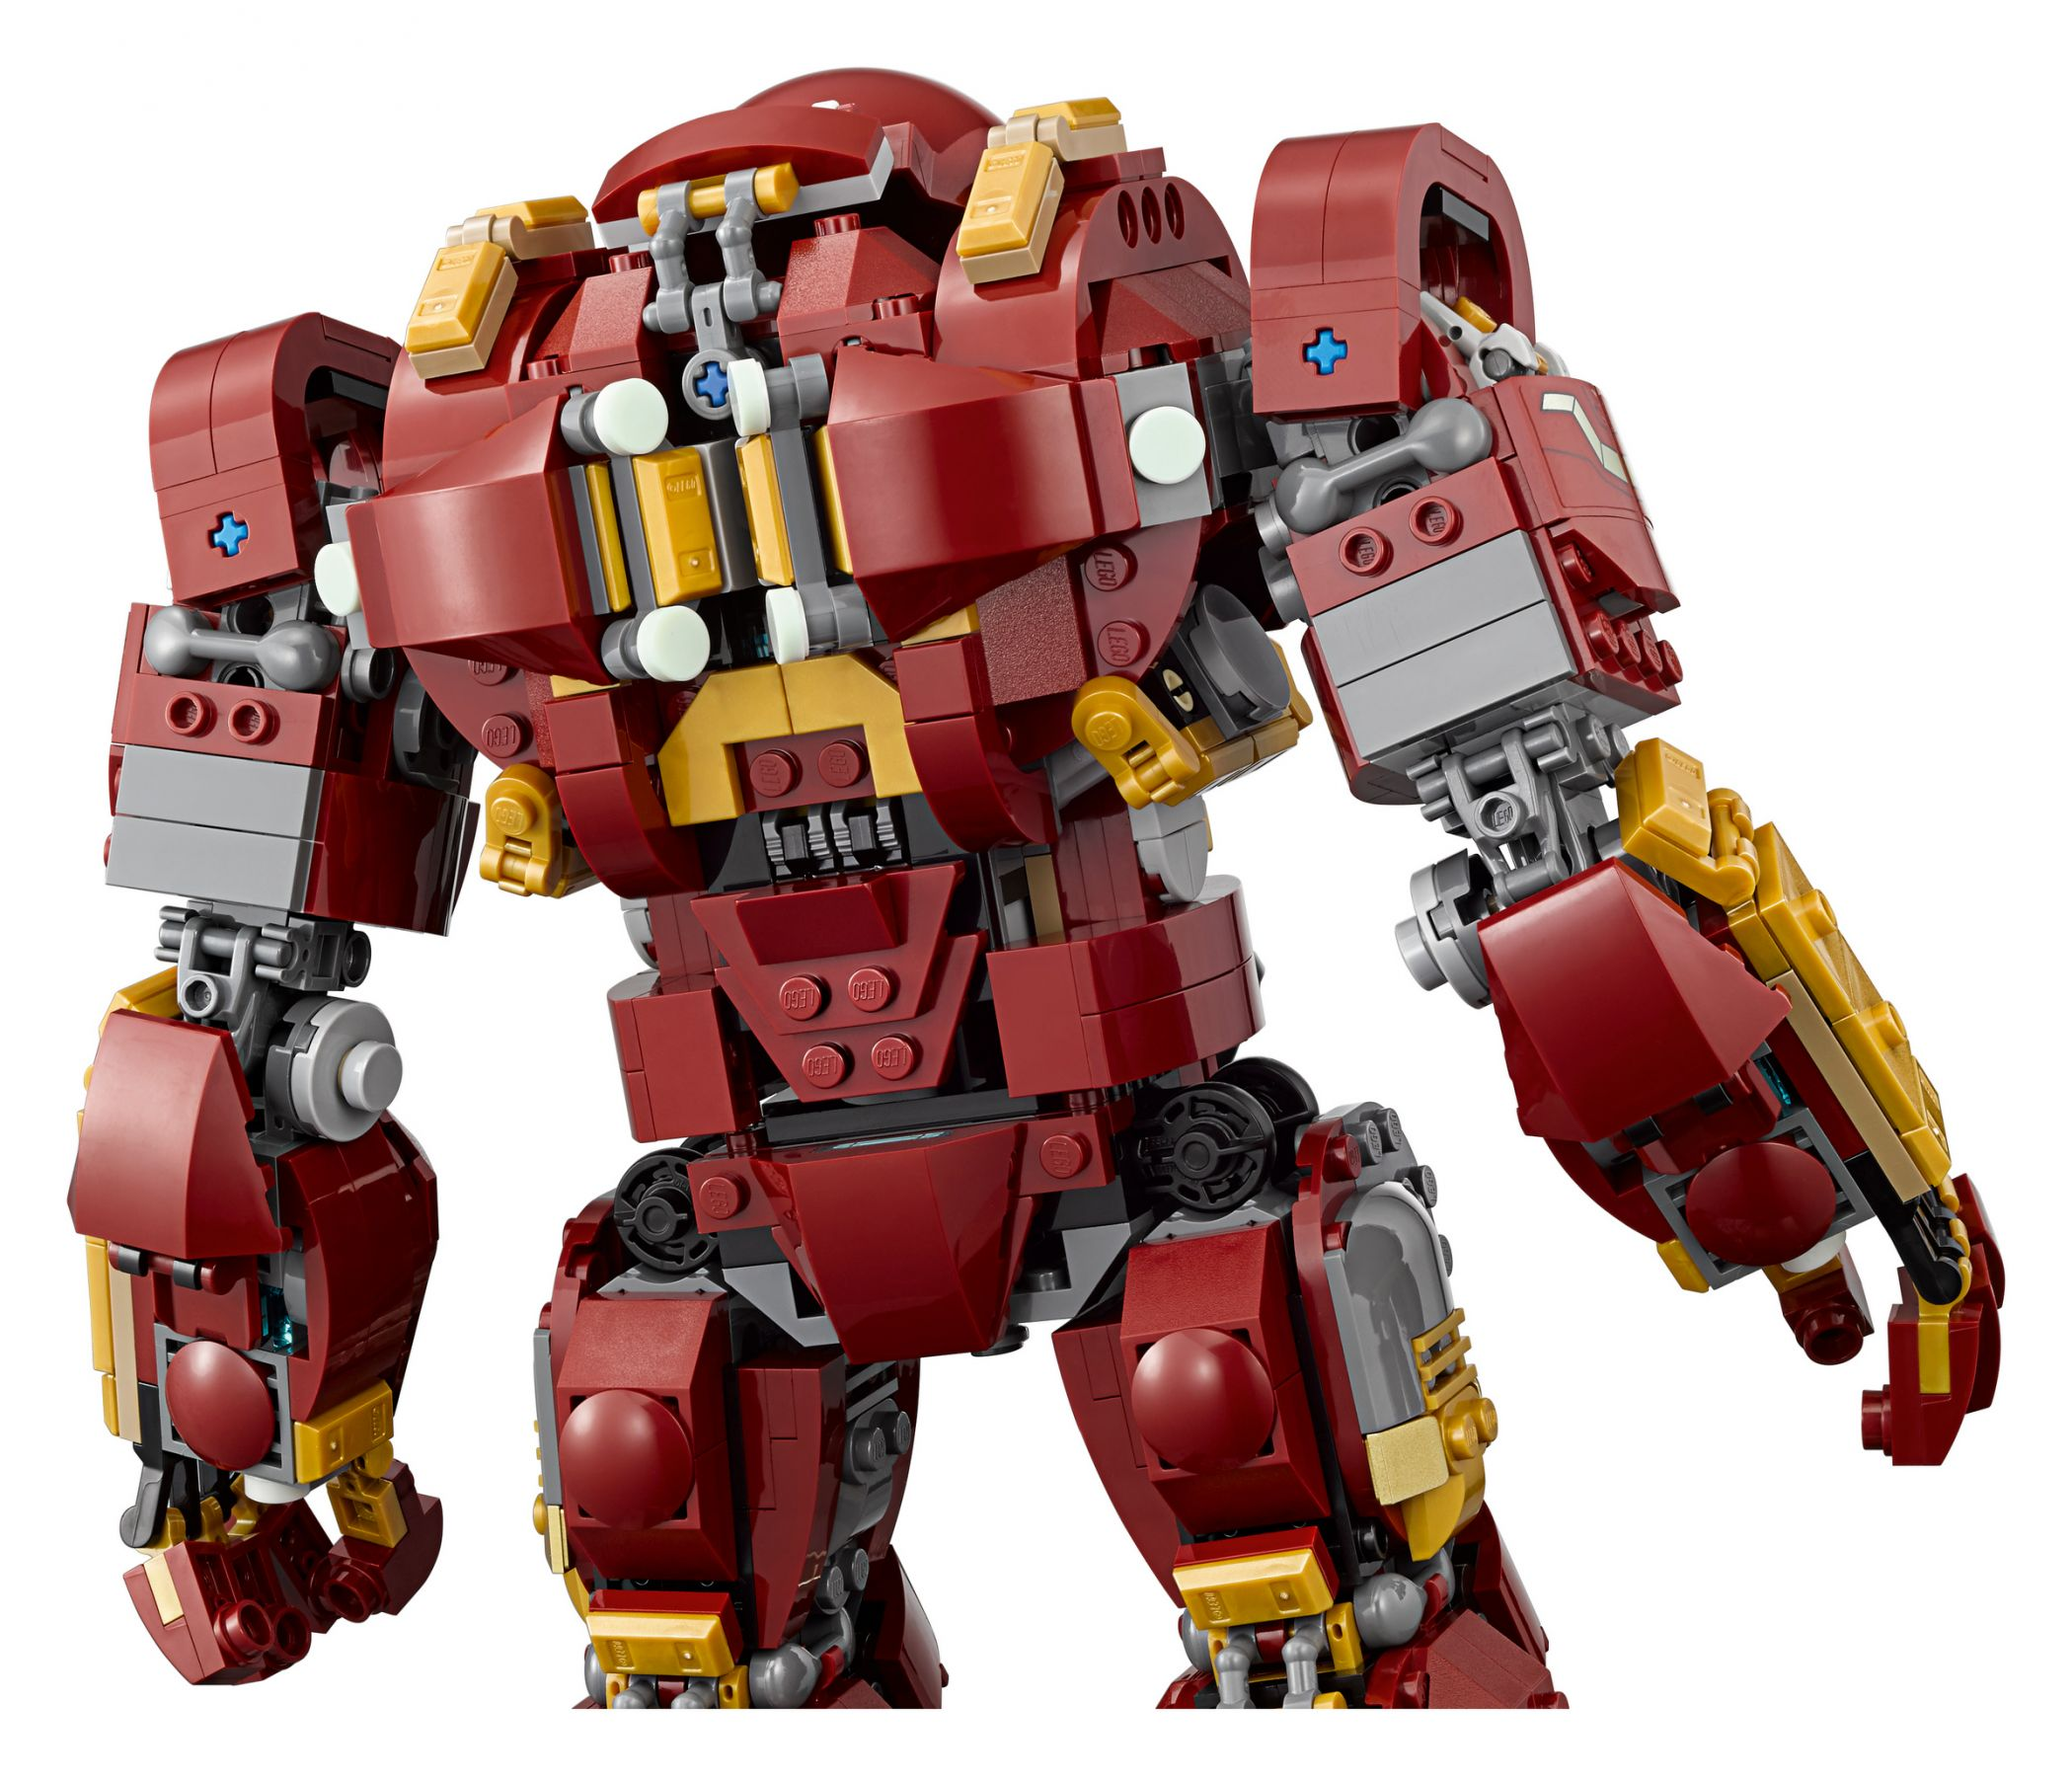 LEGO Super Heroes 76105 Marvel Avengers: Infinity War - The Hulkbuster: Ultron Edition LEGO_76105_alt9.jpg